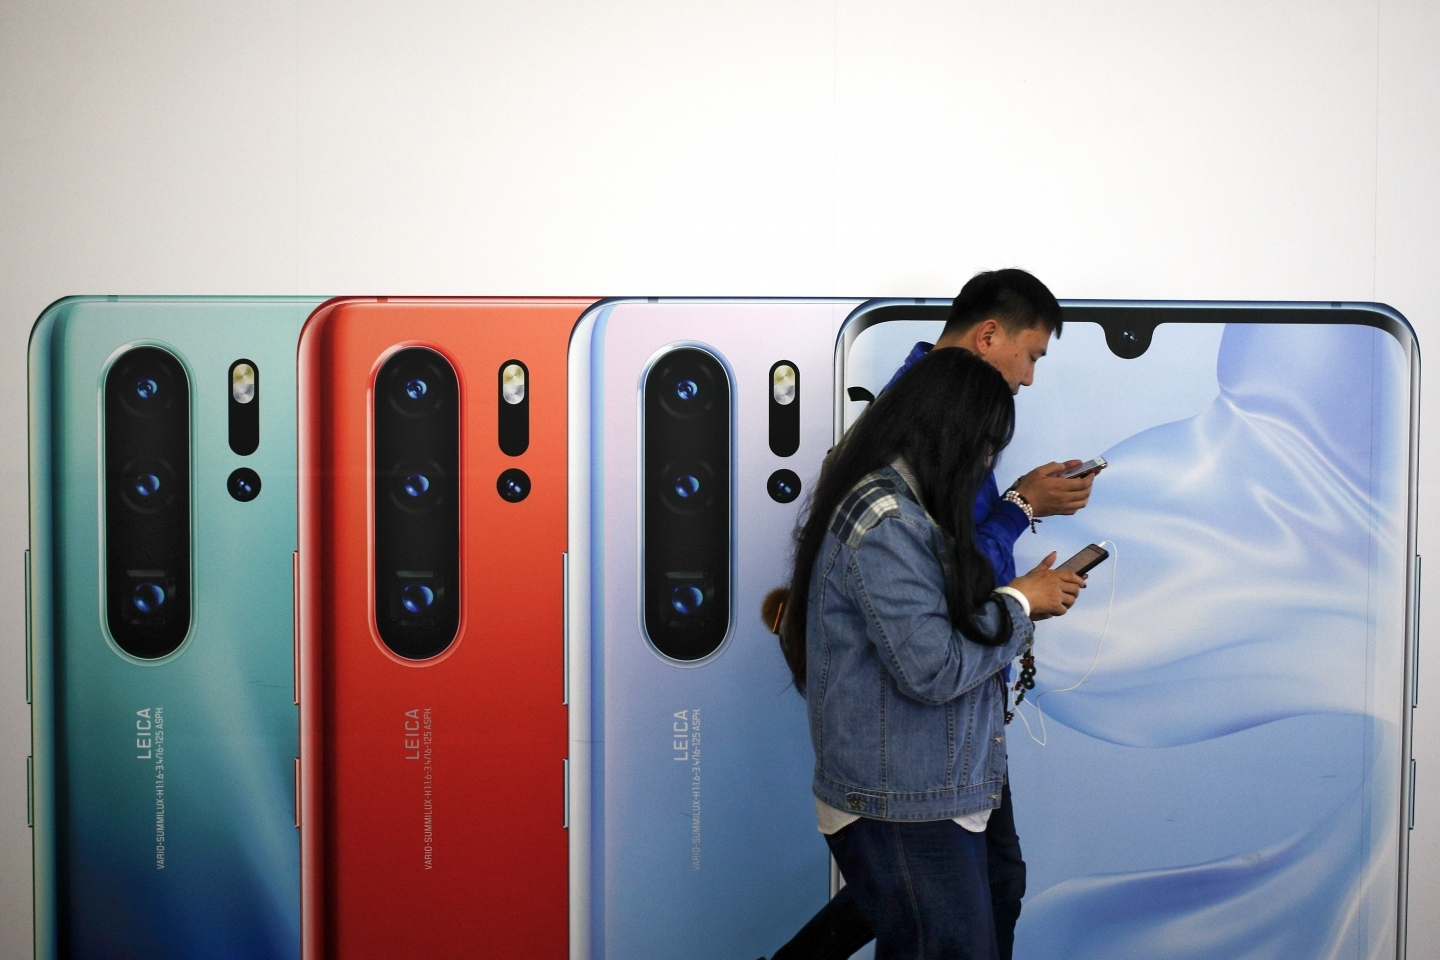 Two people browse their smartphones as they walk by a Huawei P30 smartphone advertisement in Beijing on May 13, 2019. (AP Photo/Andy Wong)